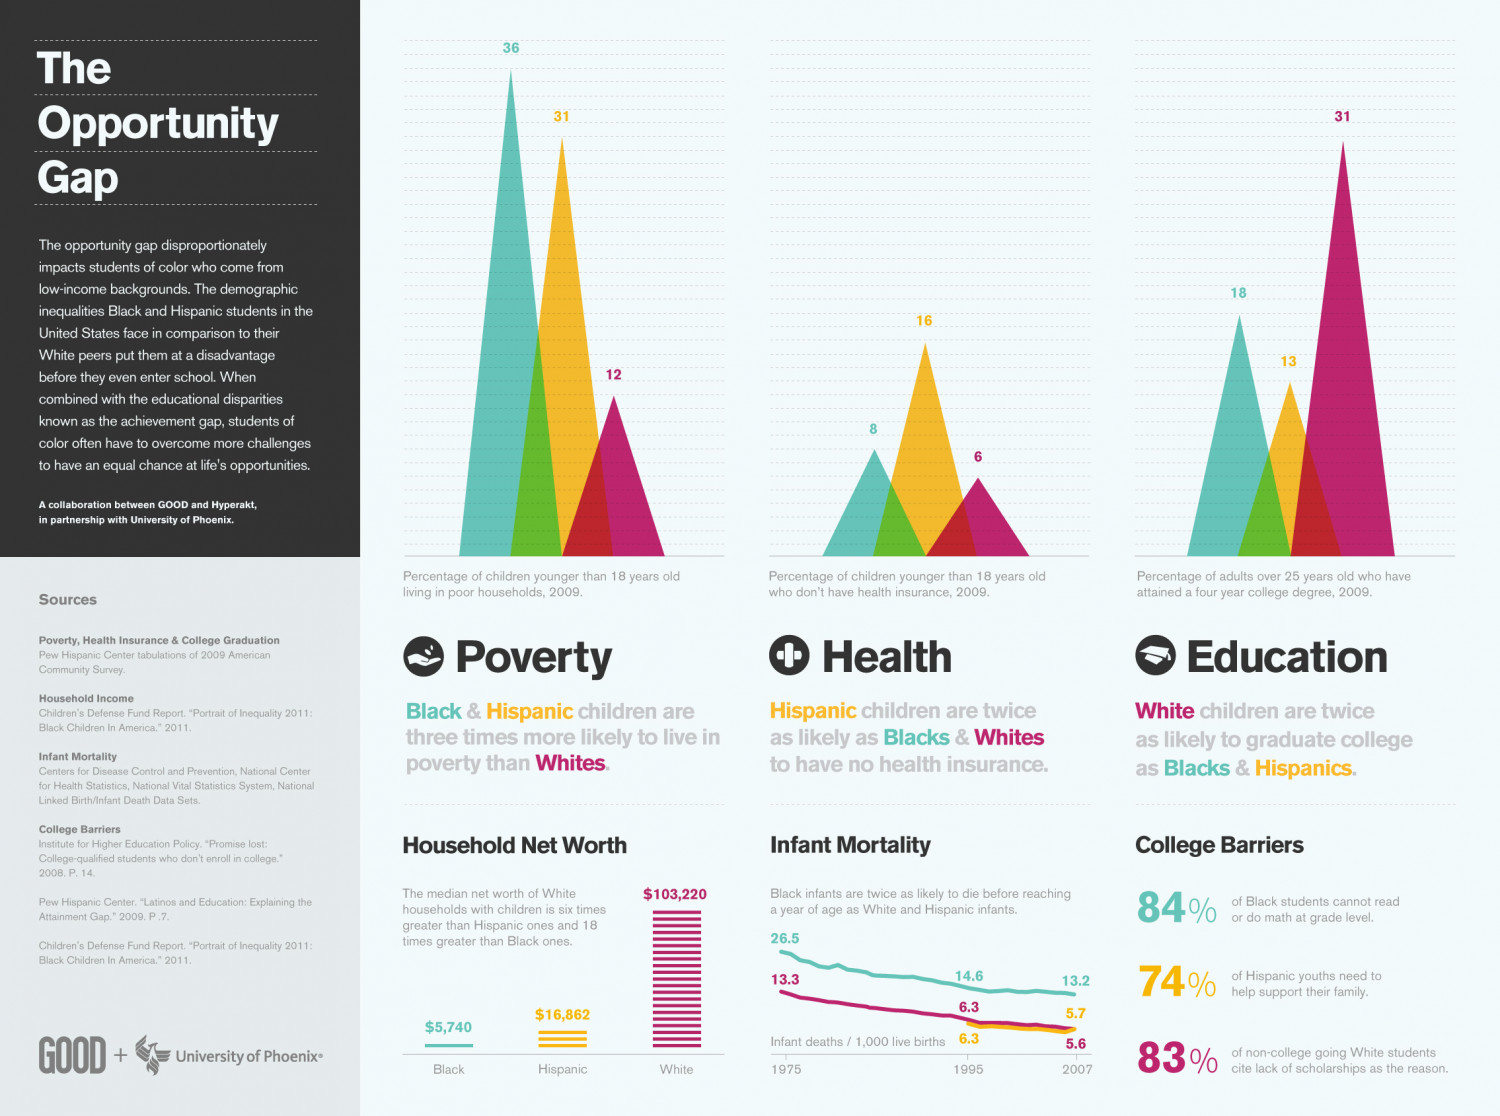 The Opportunity Gap Infographic